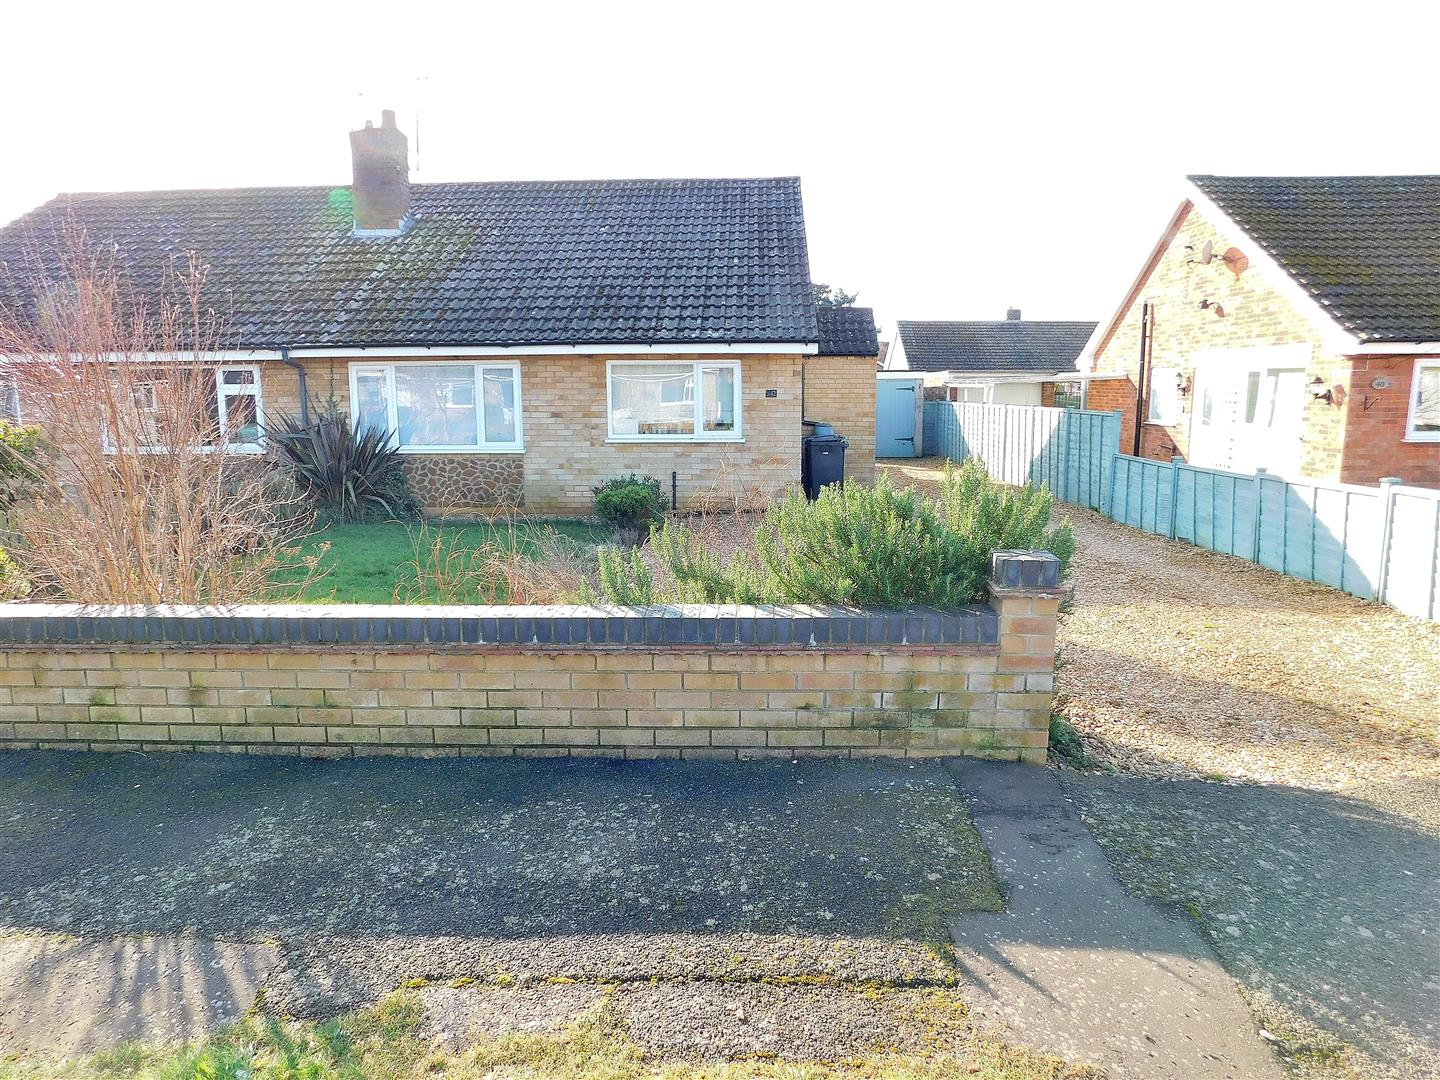 2 bed semi-detached bungalow for sale in King's Lynn, PE31 6JH  - Property Image 1